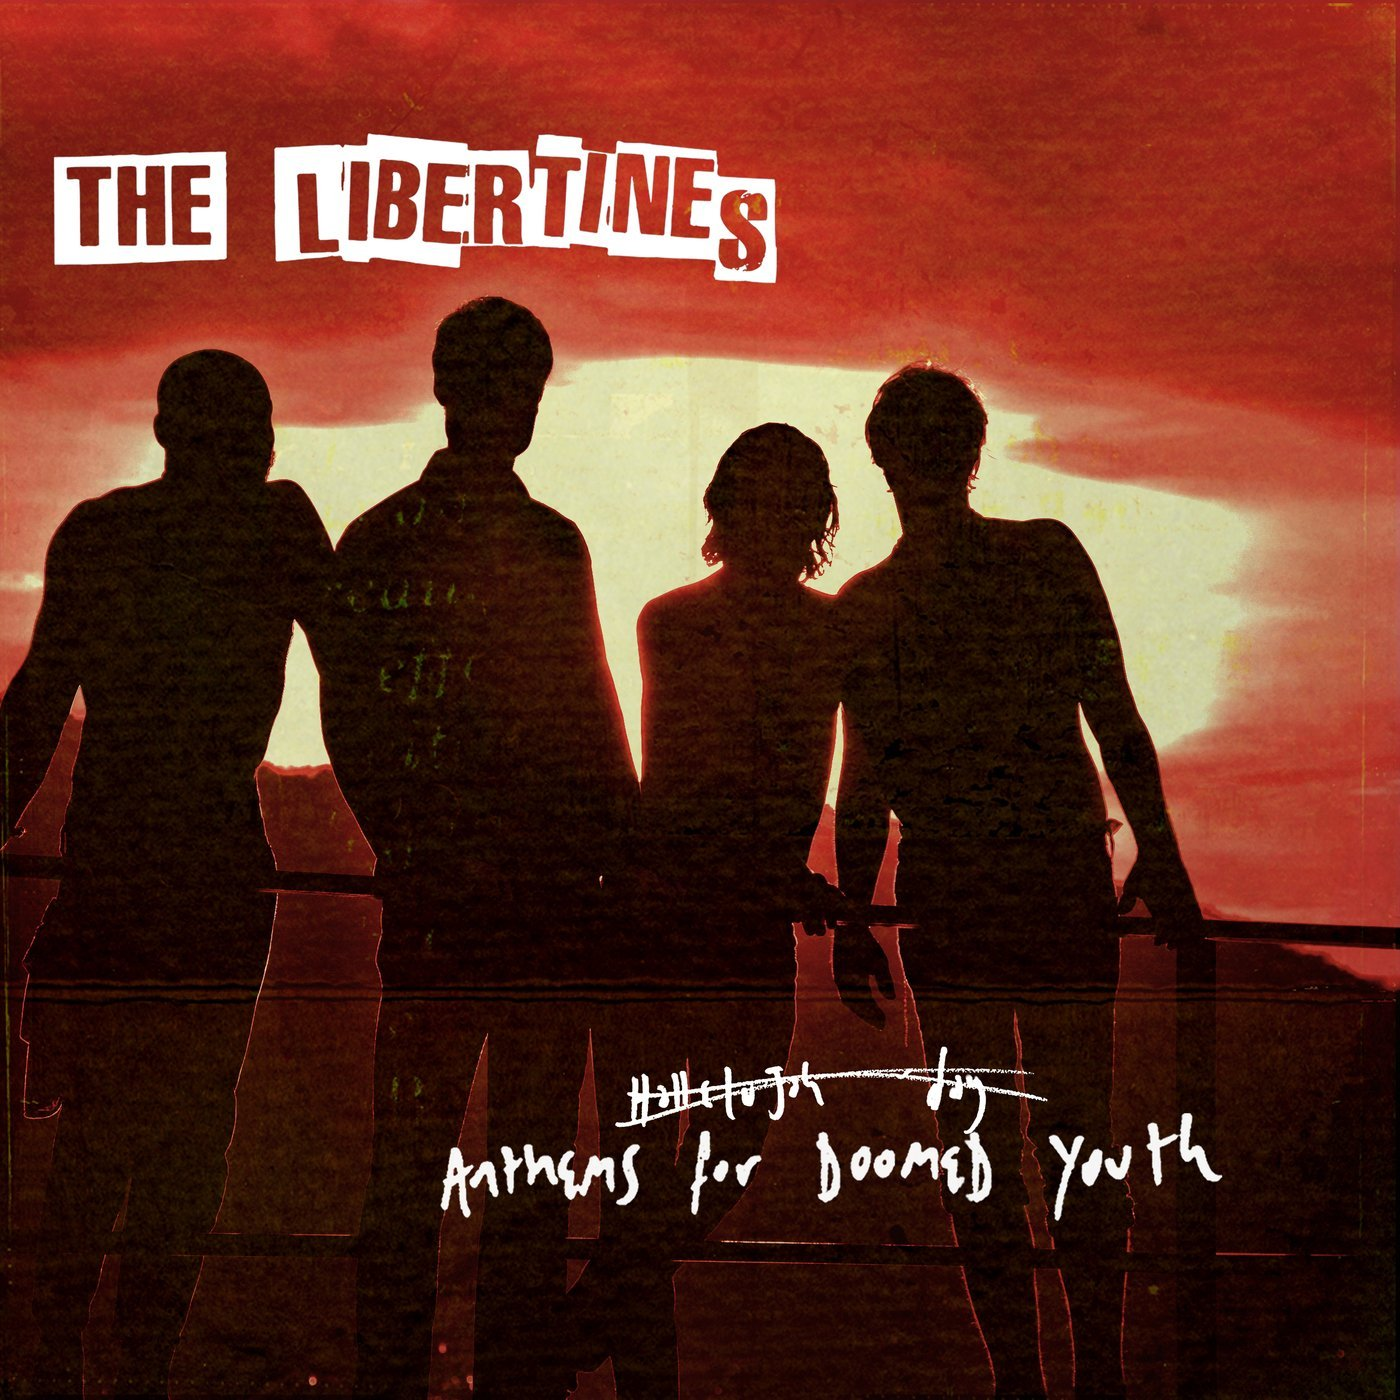 The Libertines-Anthems For Doomed Youth.jpg - 314.55 KB